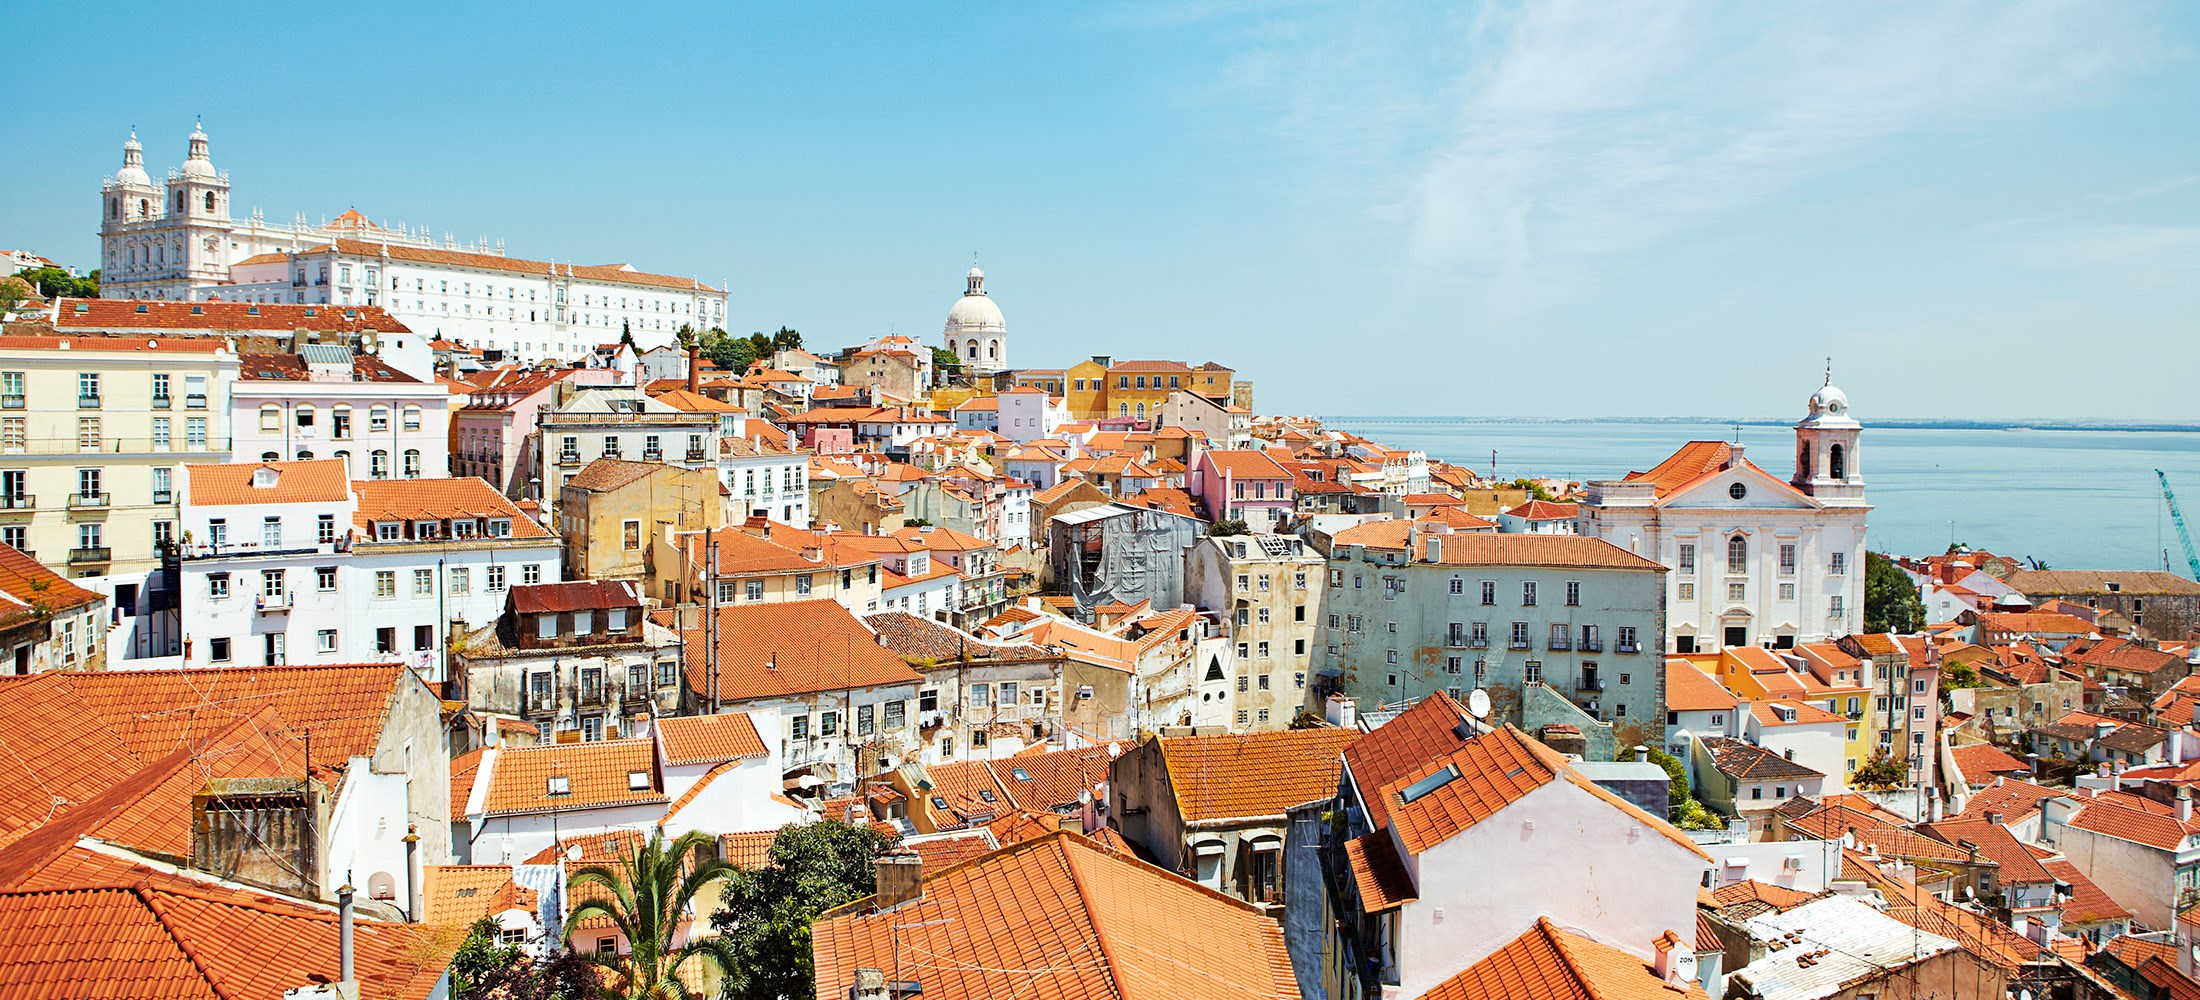 Lisbon foodie guide: where locals eat and drink